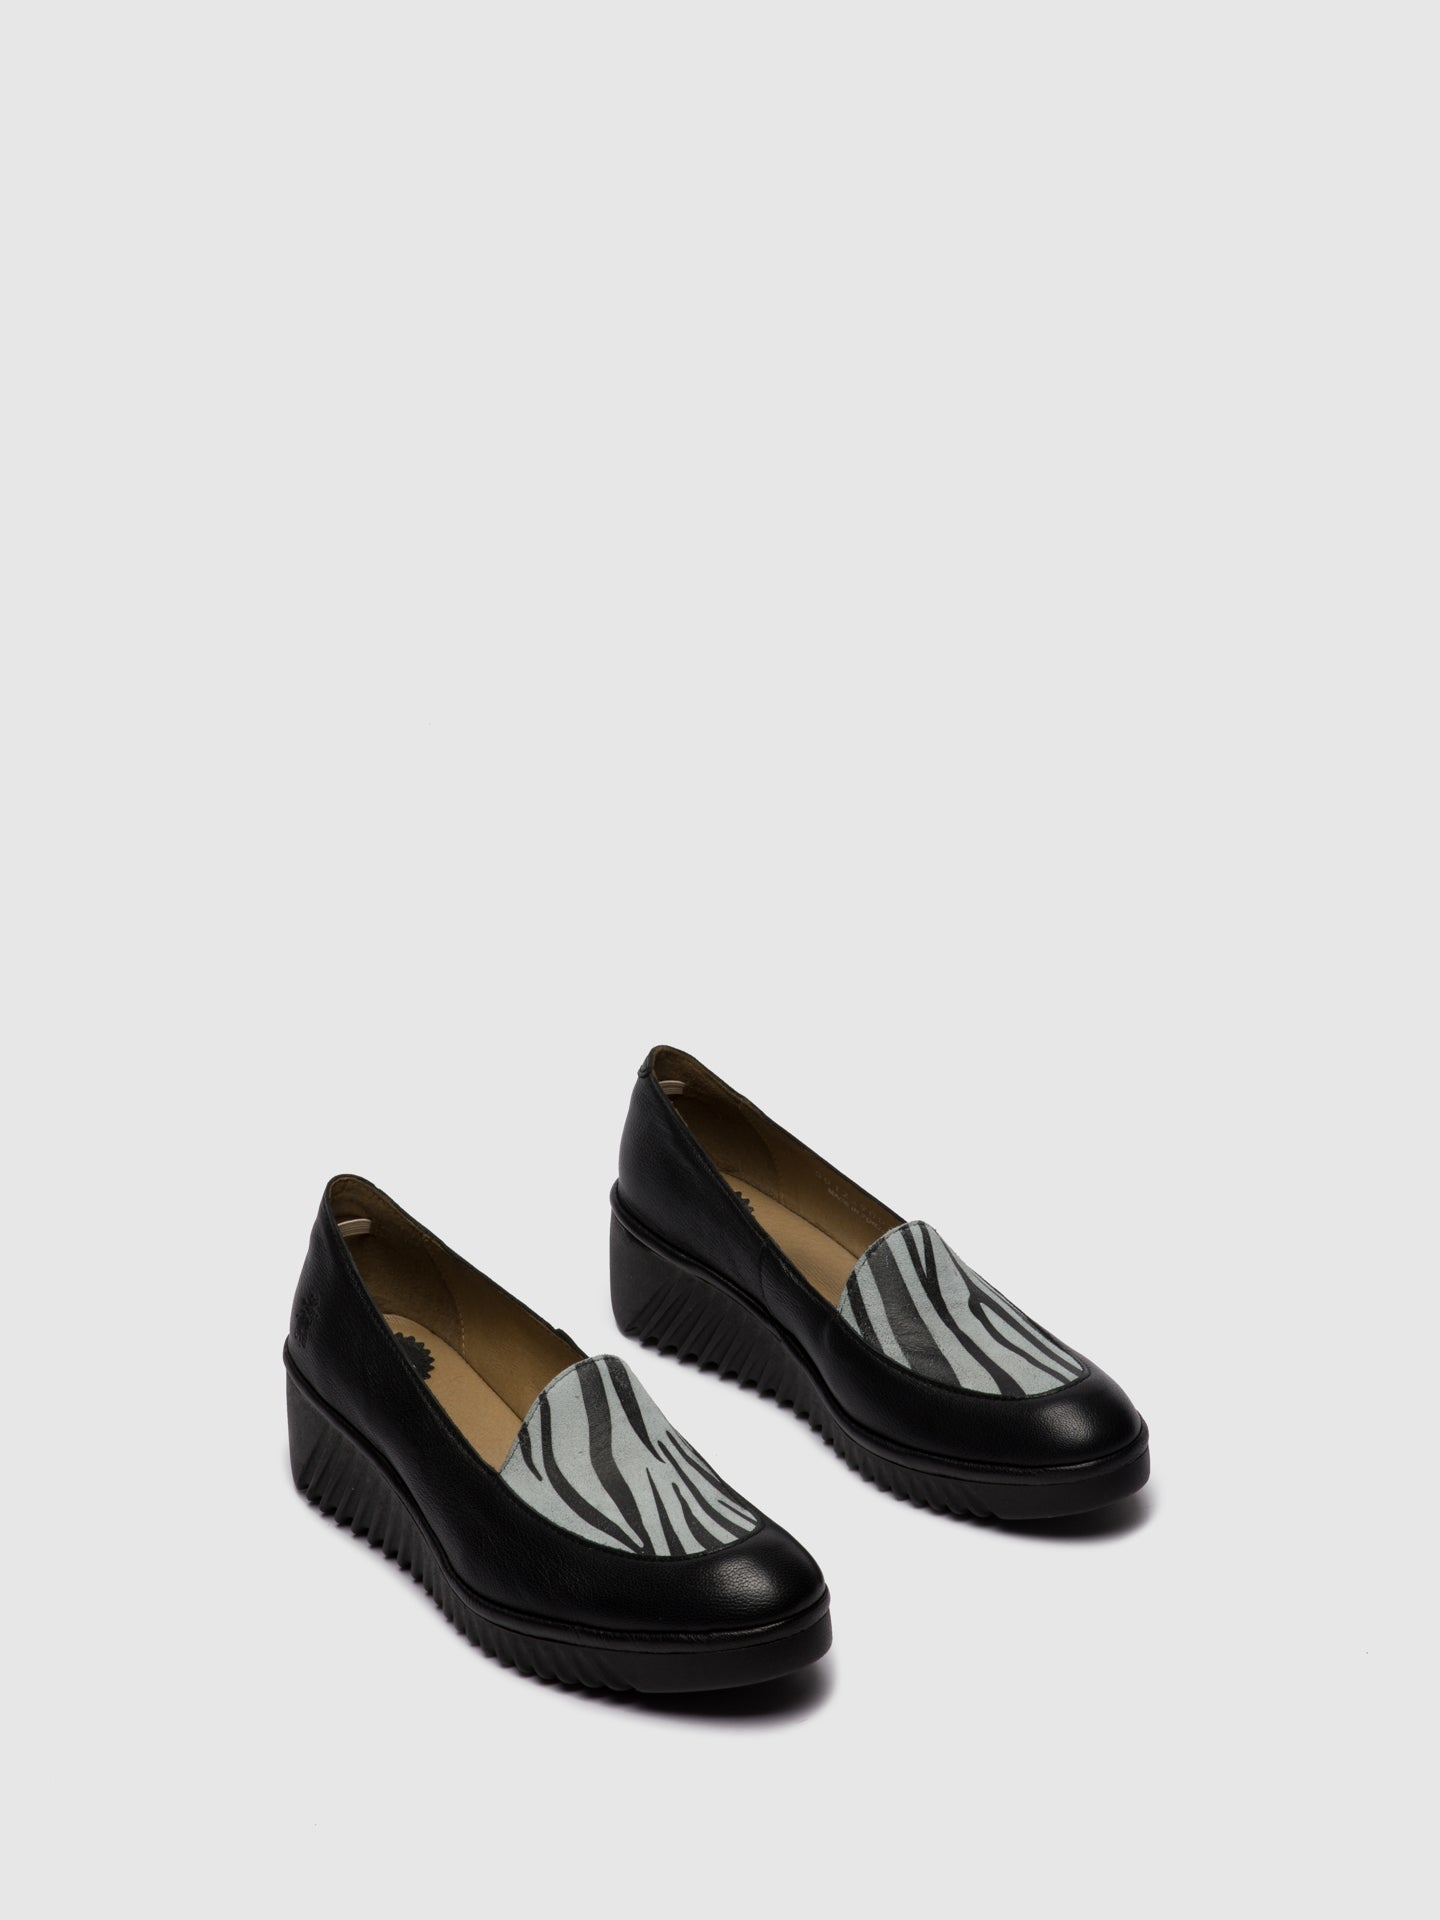 Fly London Sapatos Loafer LUAN239FLY MOUSSE/ZEBRA BLACK/OFFWHITE